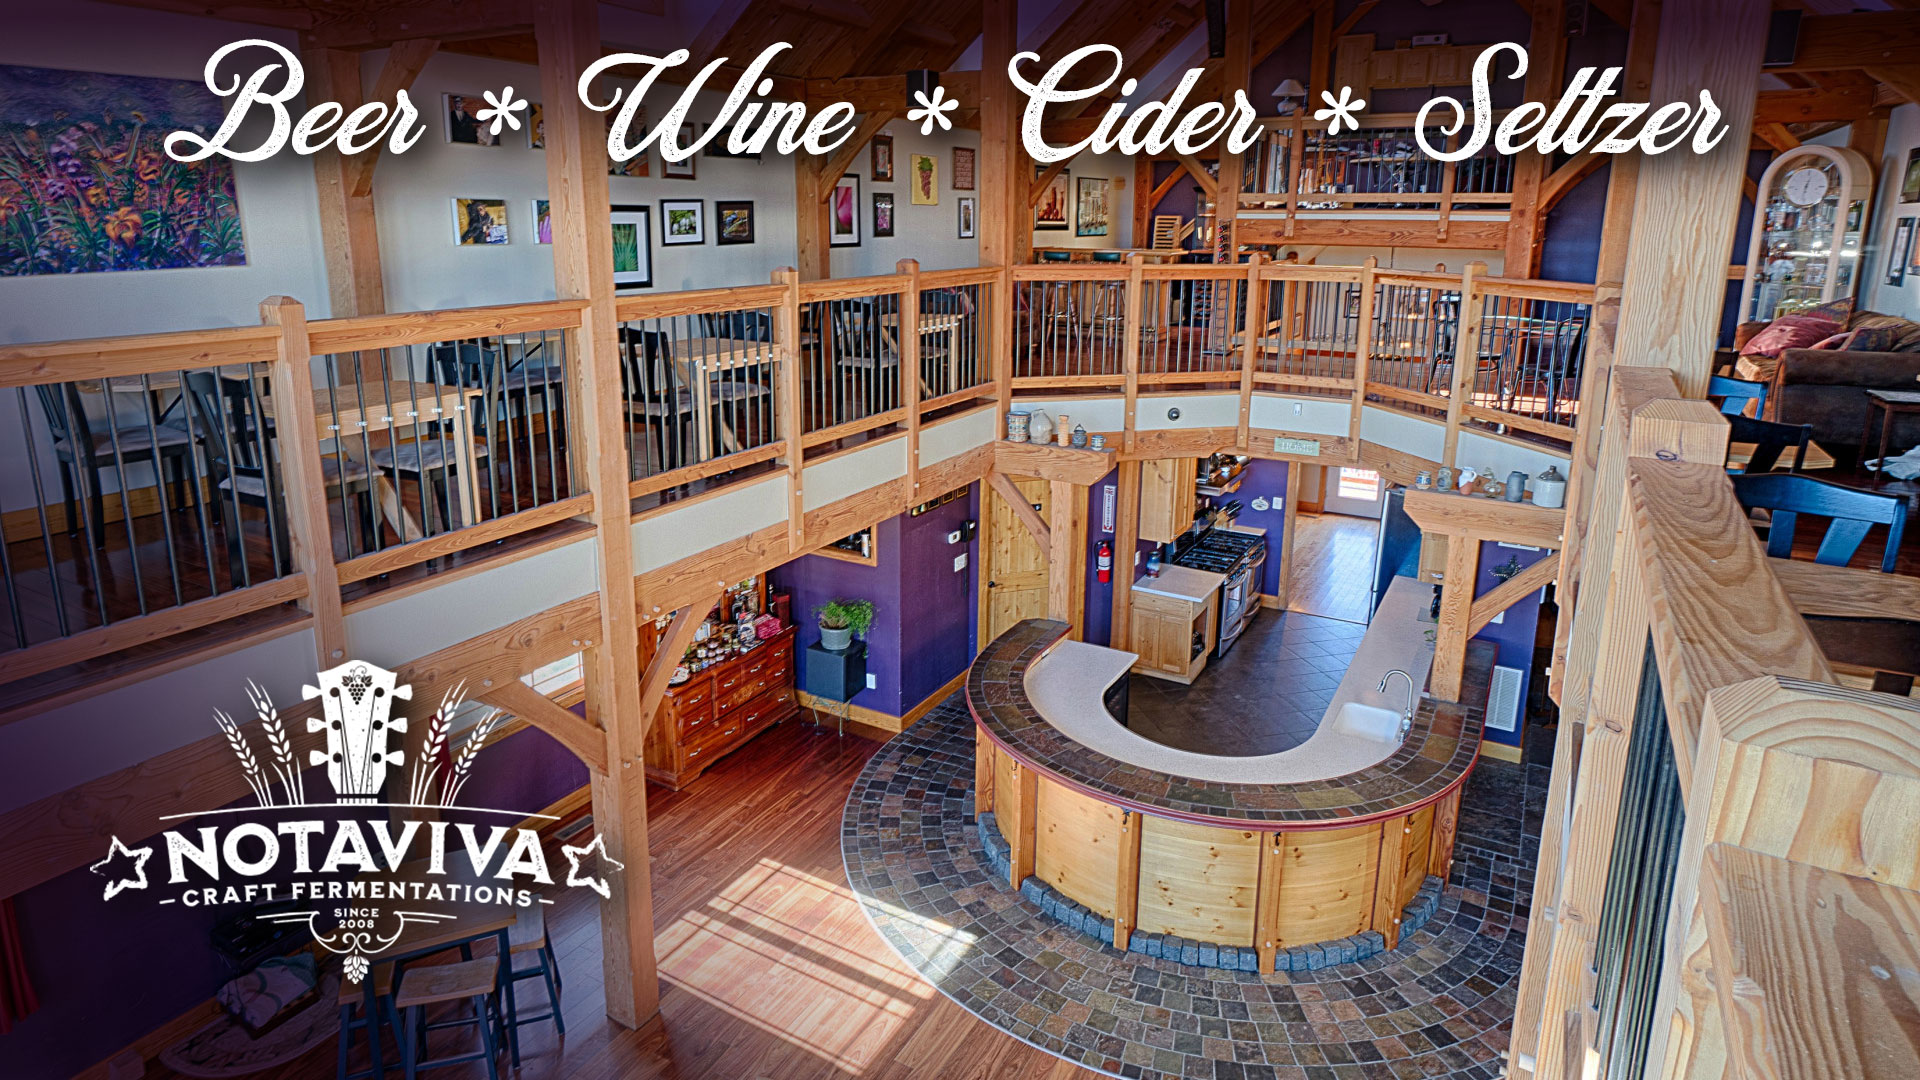 winery brewery near harpers ferry and leesburg serving wine beer cider seltzer